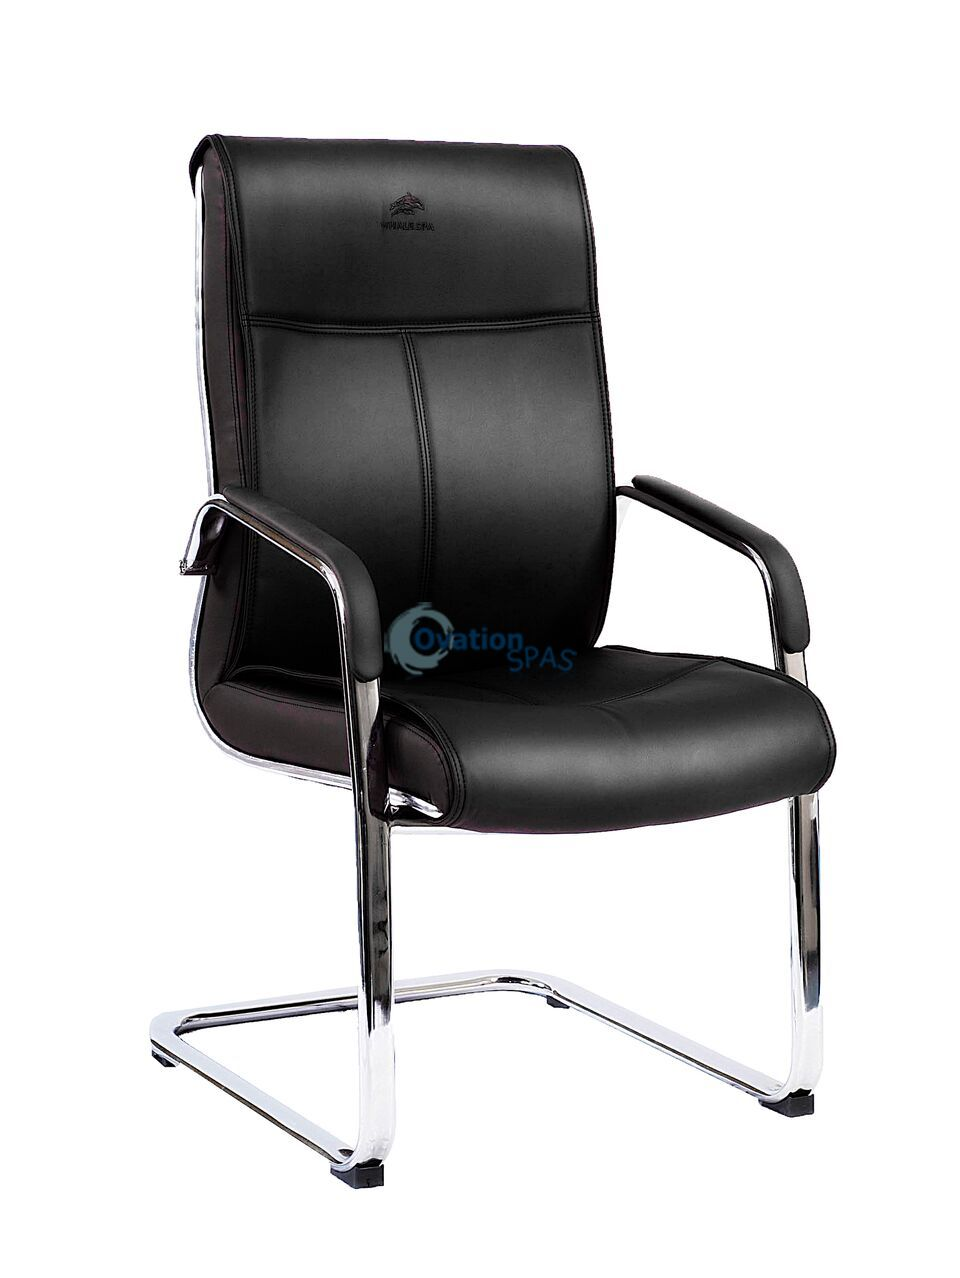 Waiting Chair 8021 - Black